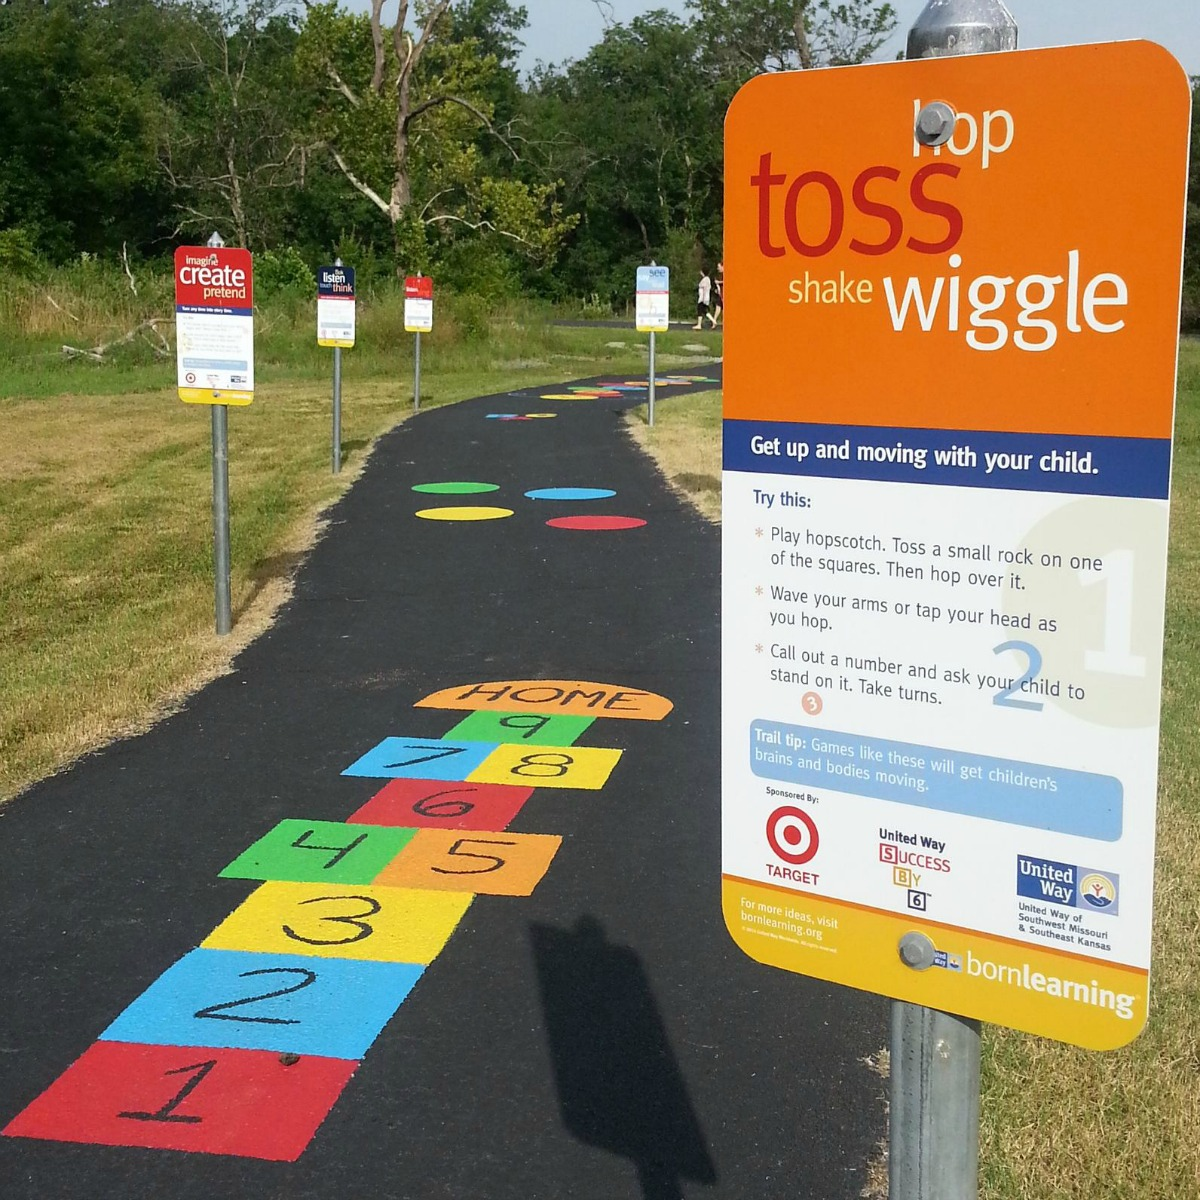 Born Learning Trail in Colbert Park